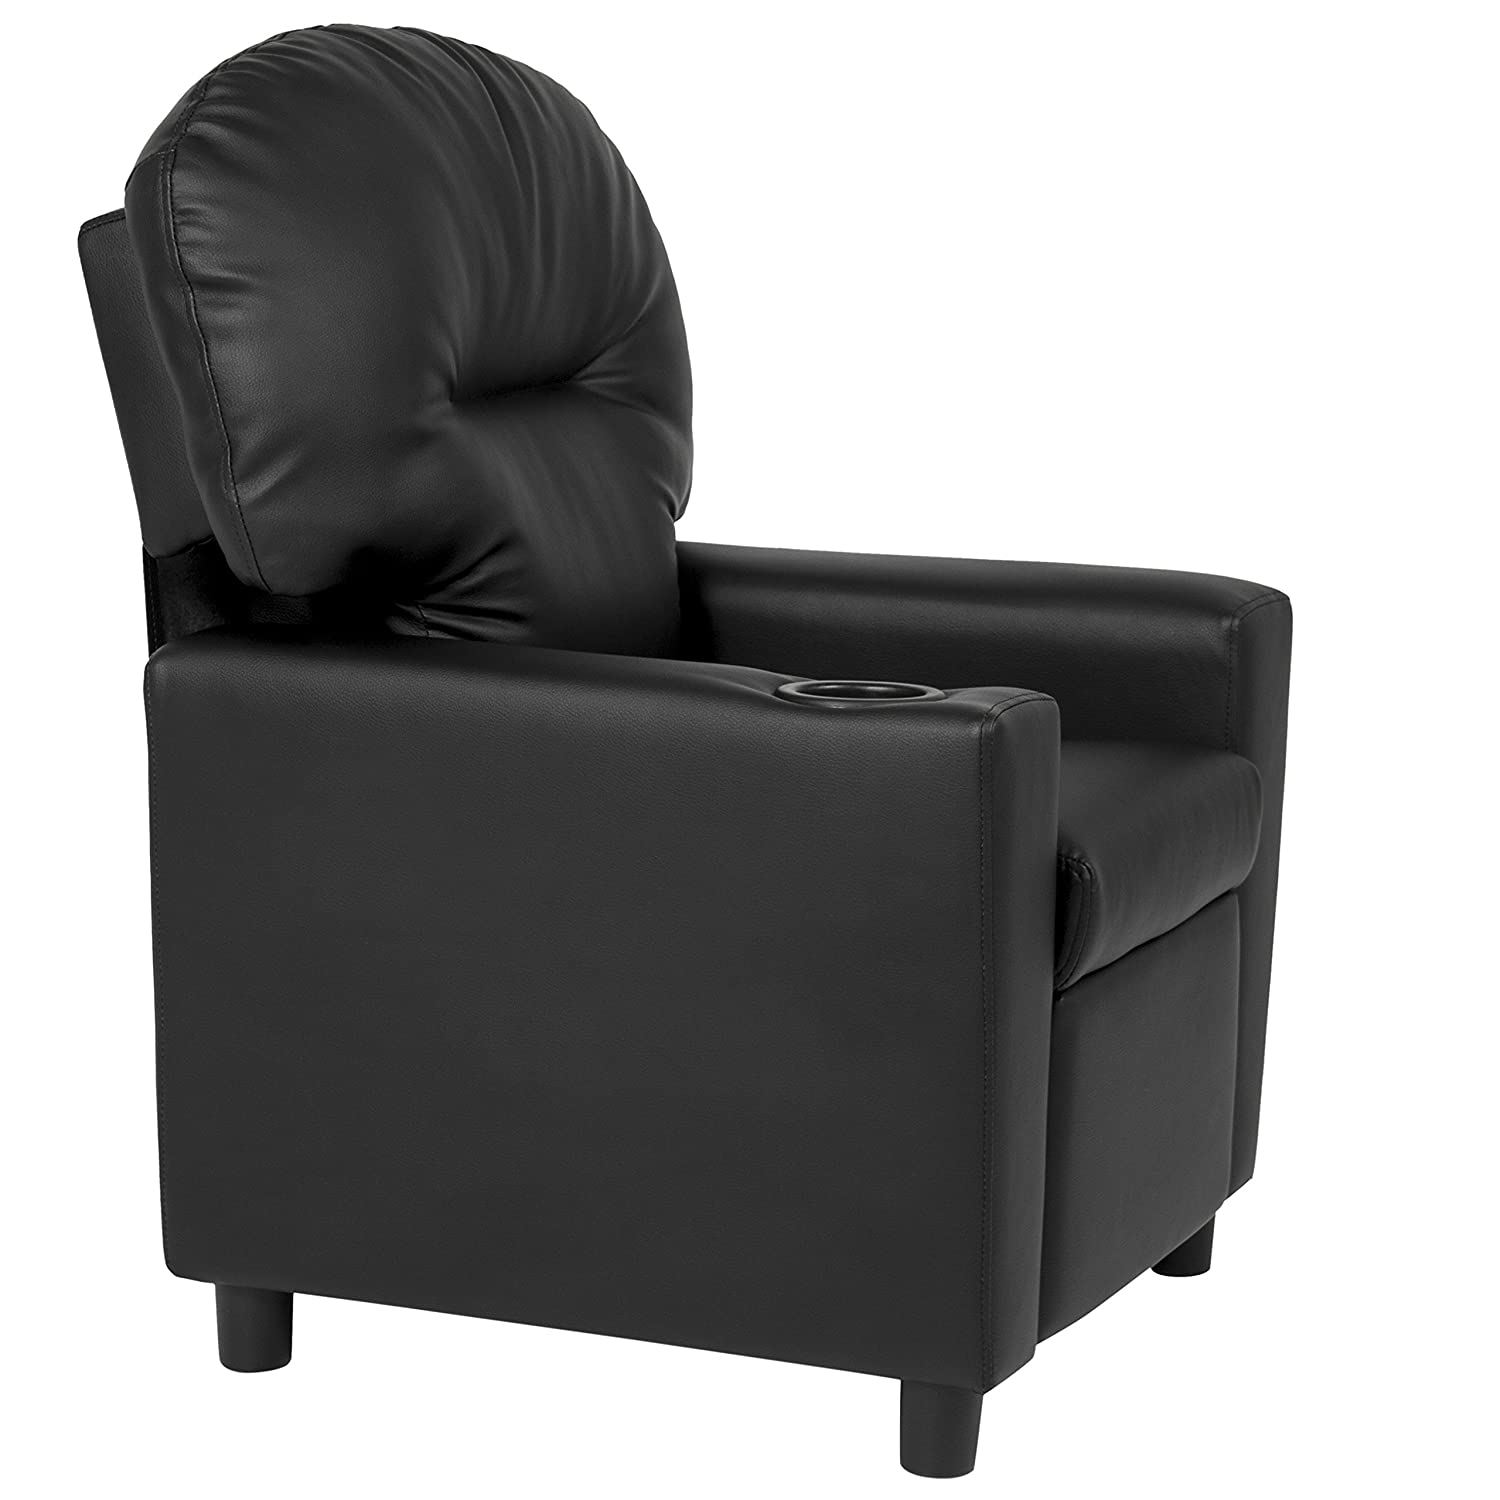 Amazon.com BCP Contemporary Black Leather Kids Recliner Chair with Cup Holder Home u0026 Kitchen  sc 1 st  Amazon.com & Amazon.com: BCP Contemporary Black Leather Kids Recliner Chair ... islam-shia.org